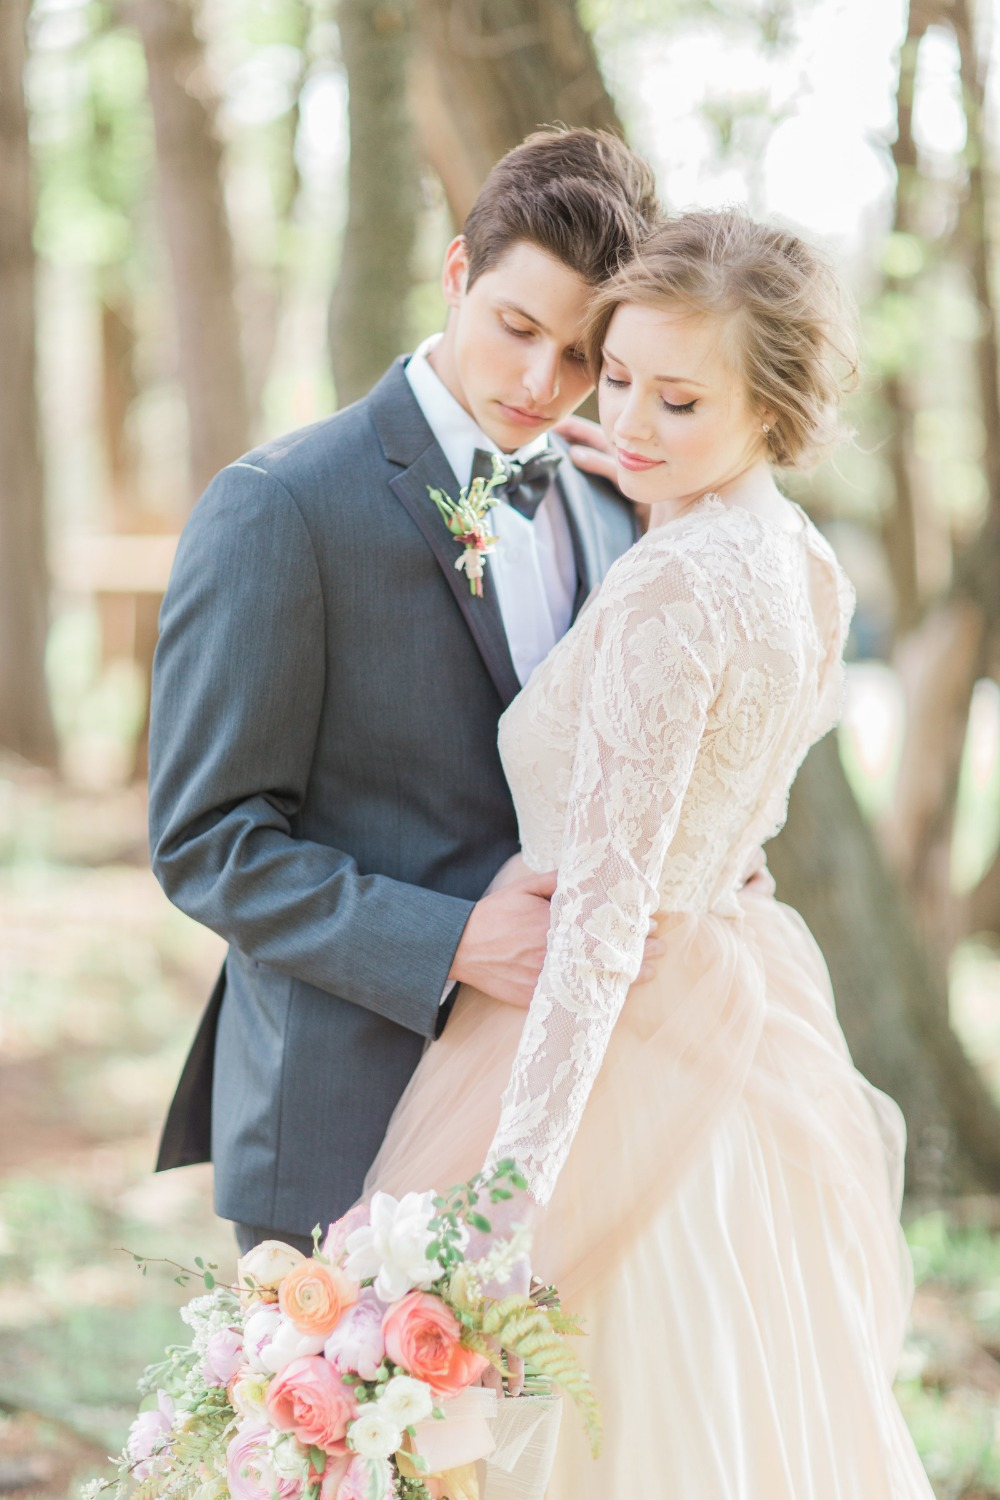 Gorgeous wedding portrait